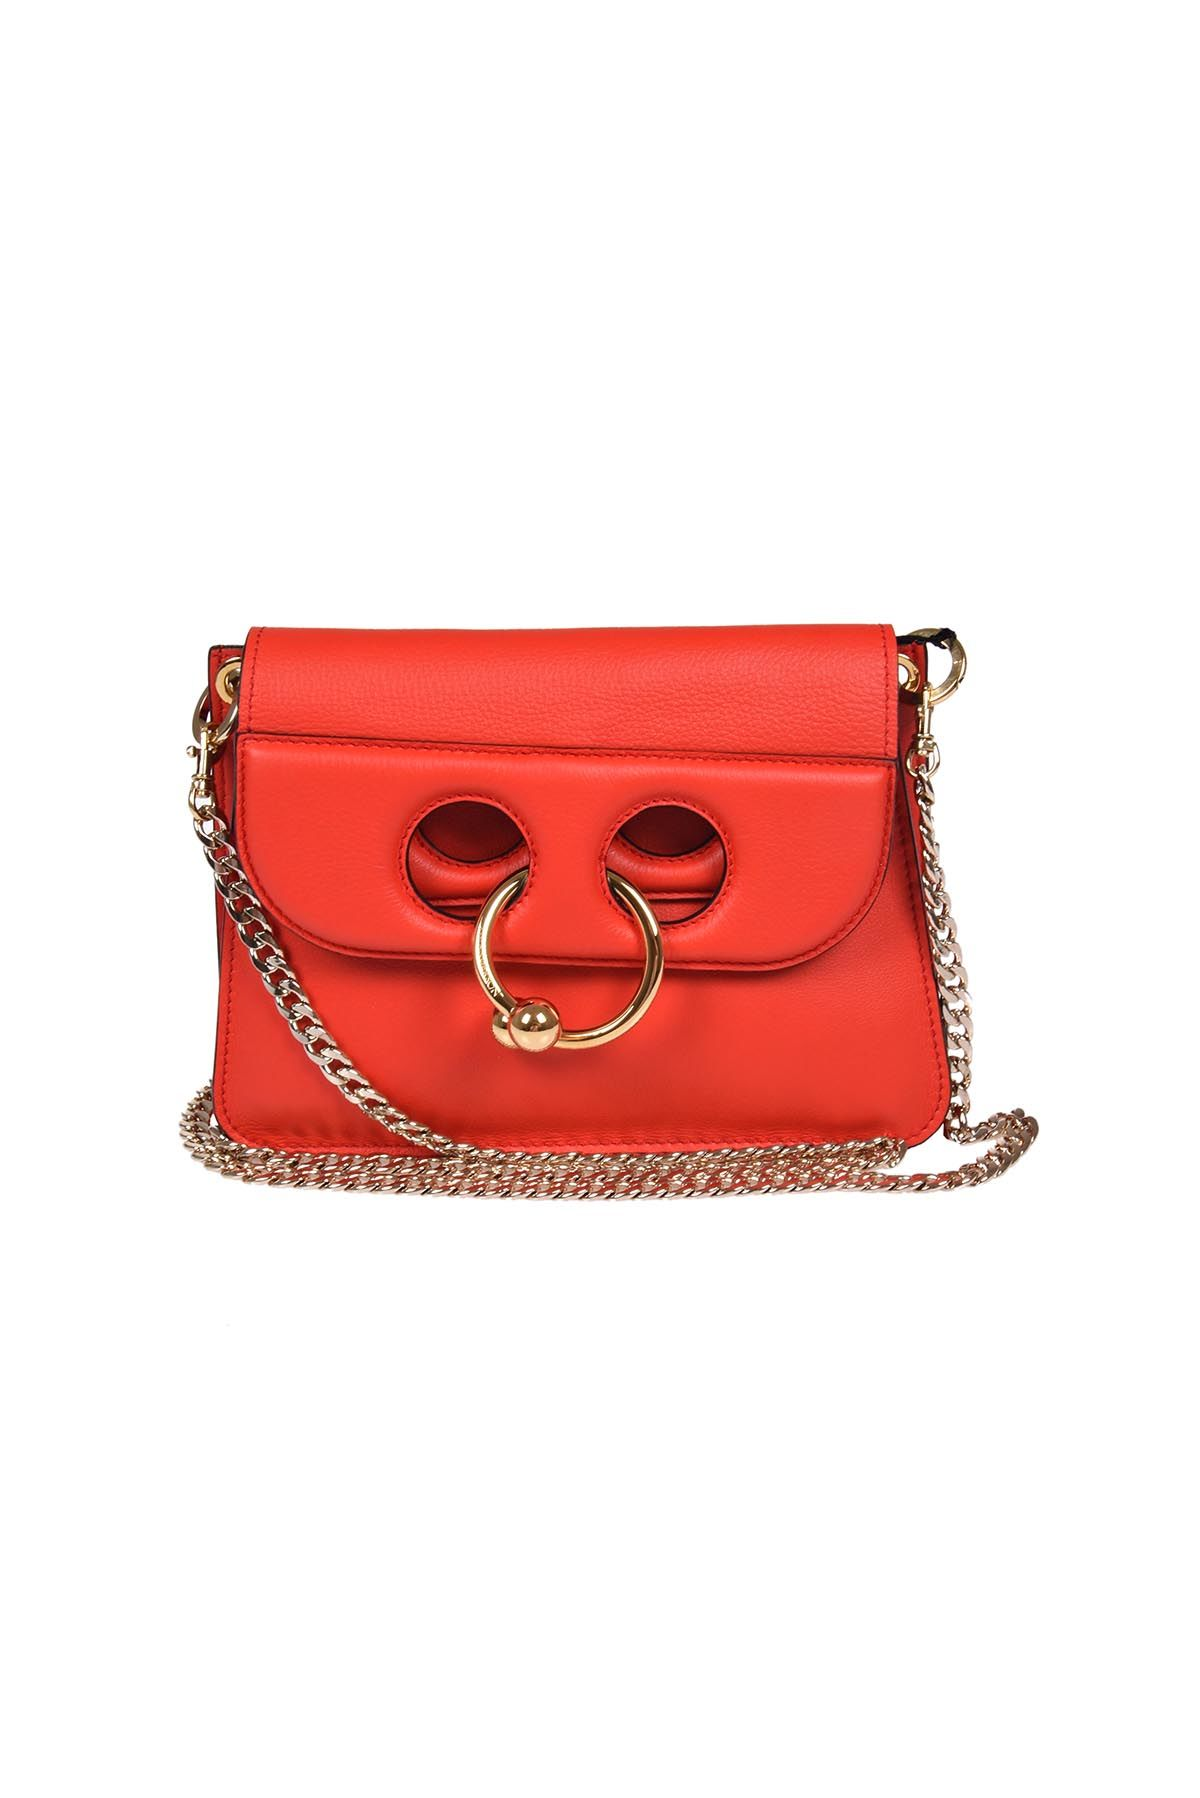 J.W. Anderson Pierce Mini Shoulder Bag